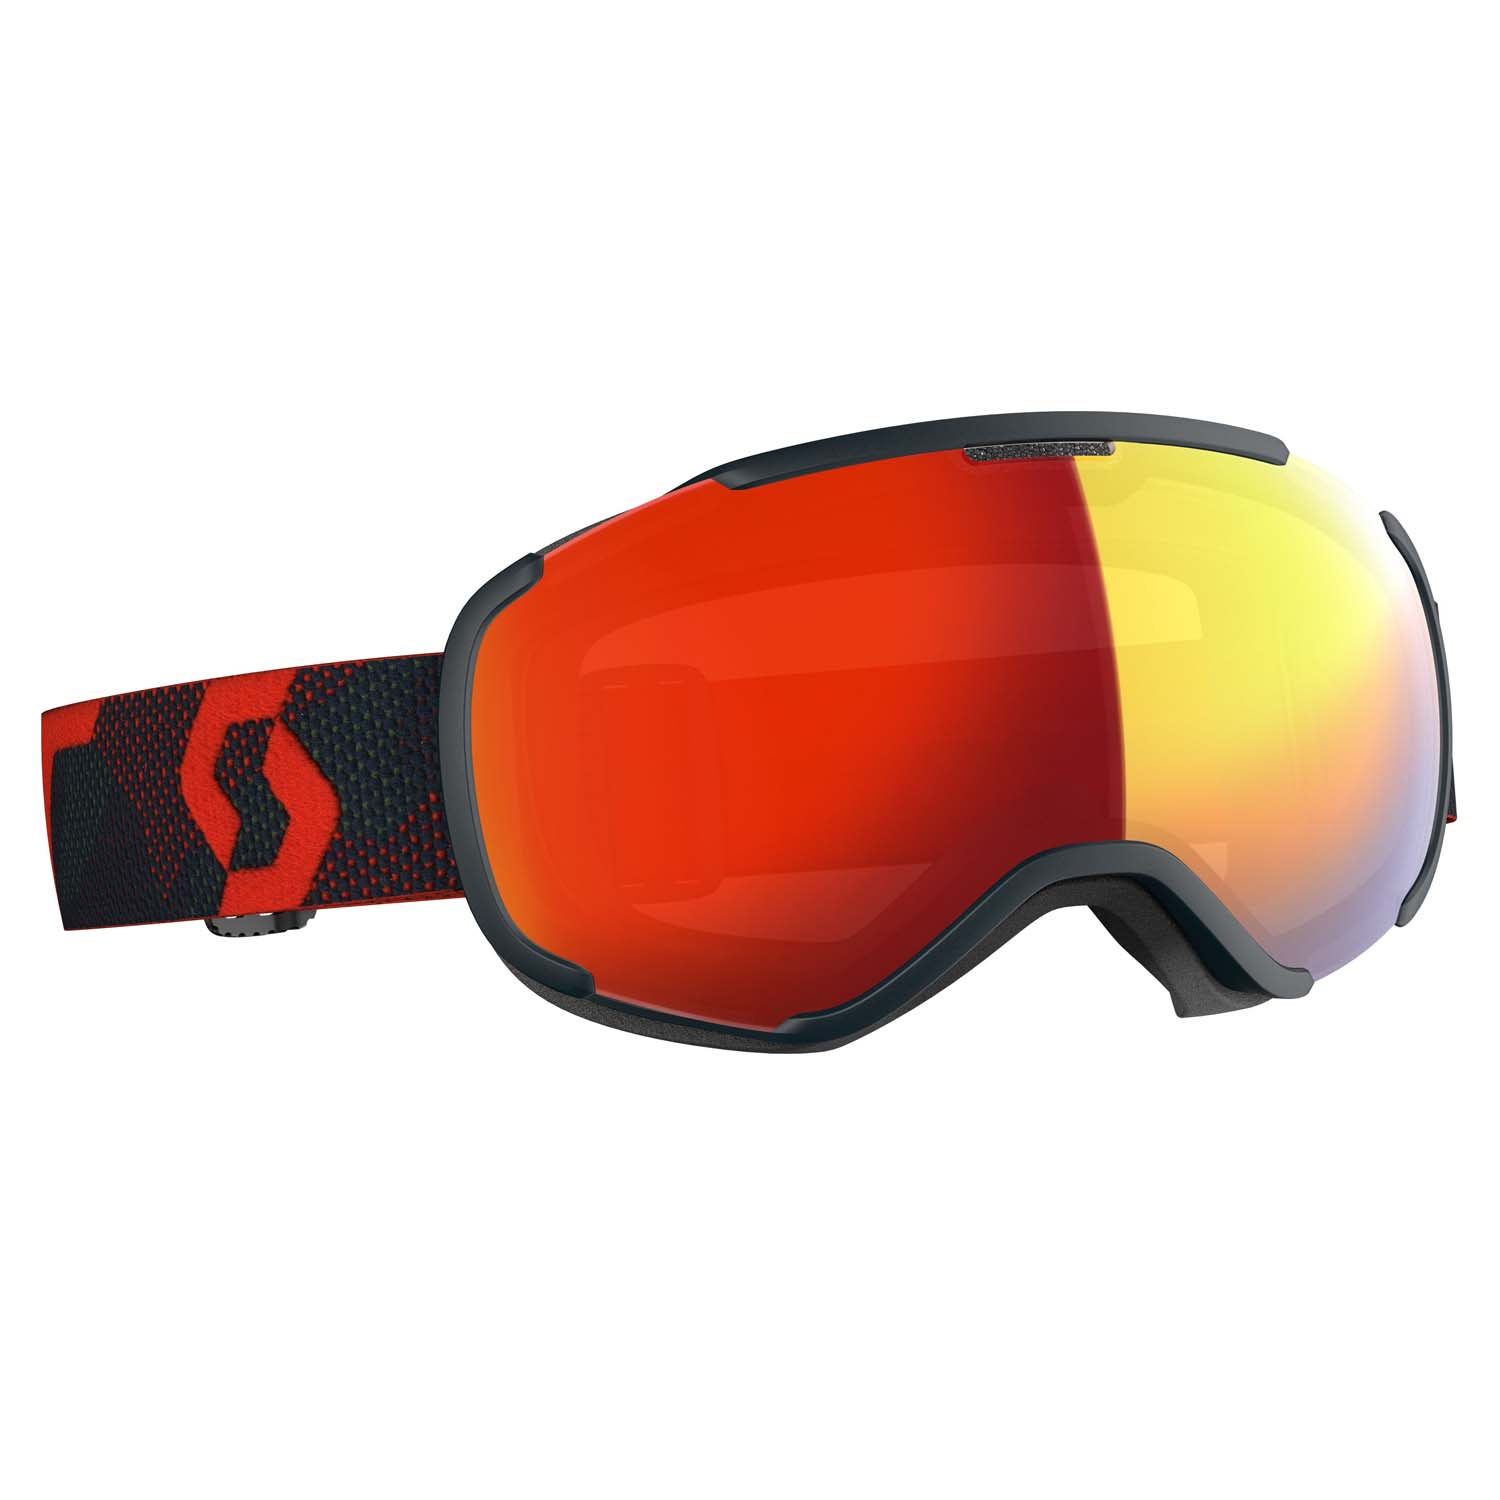 Scott Faze II Goggle Blue Nights/Merlot Red LS Enhancer Red Chrome Lens 2020